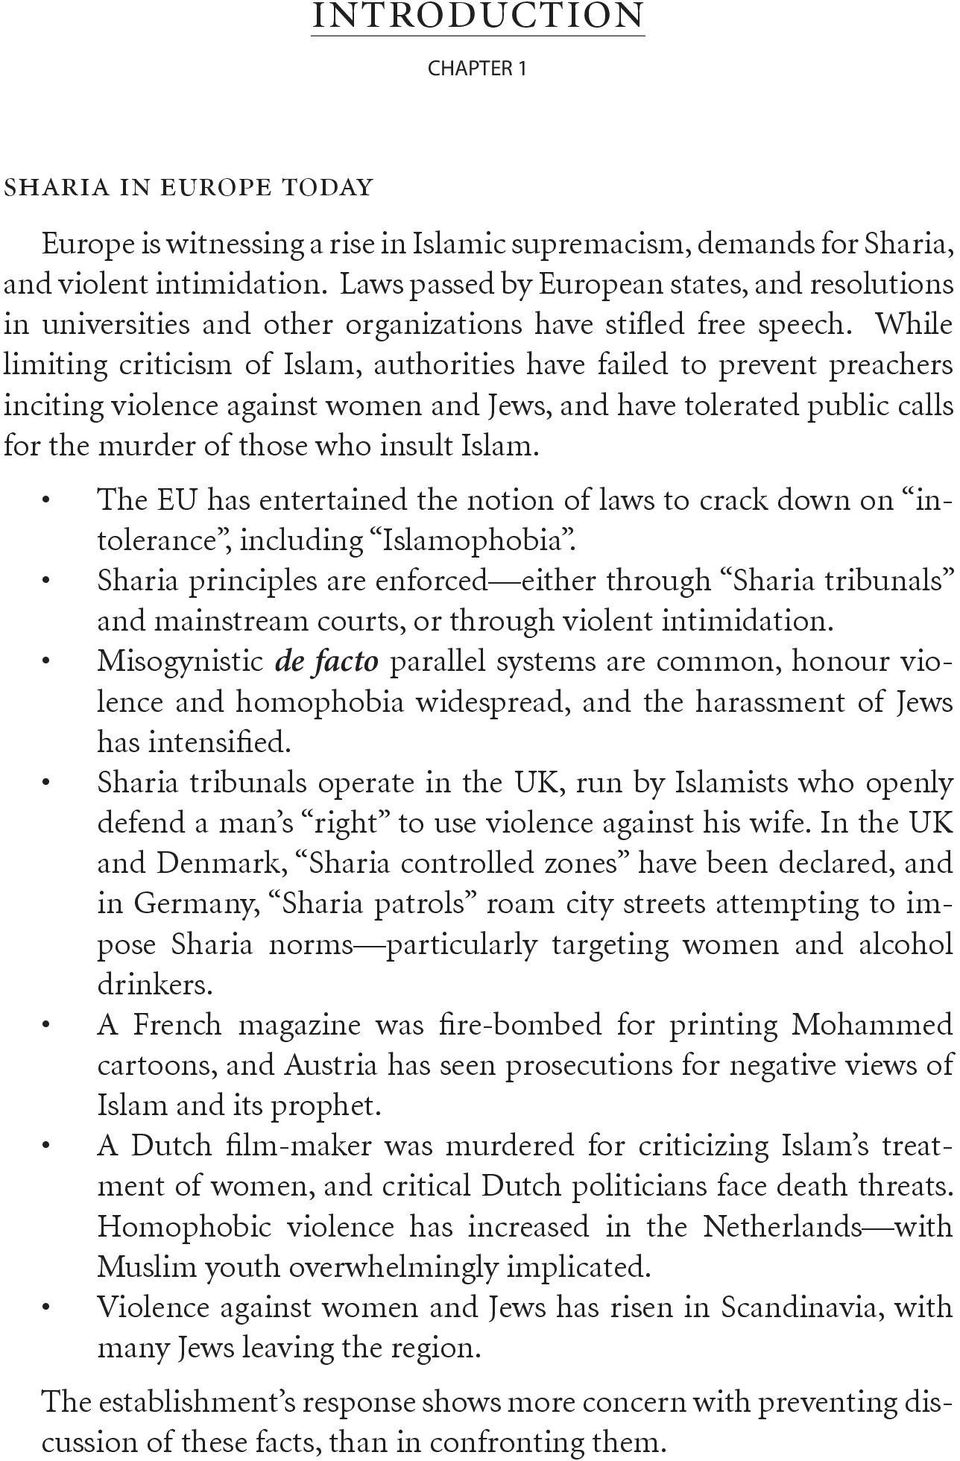 While limiting criticism of Islam, authorities have failed to prevent preachers inciting violence against women and Jews, and have tolerated public calls for the murder of those who insult Islam.